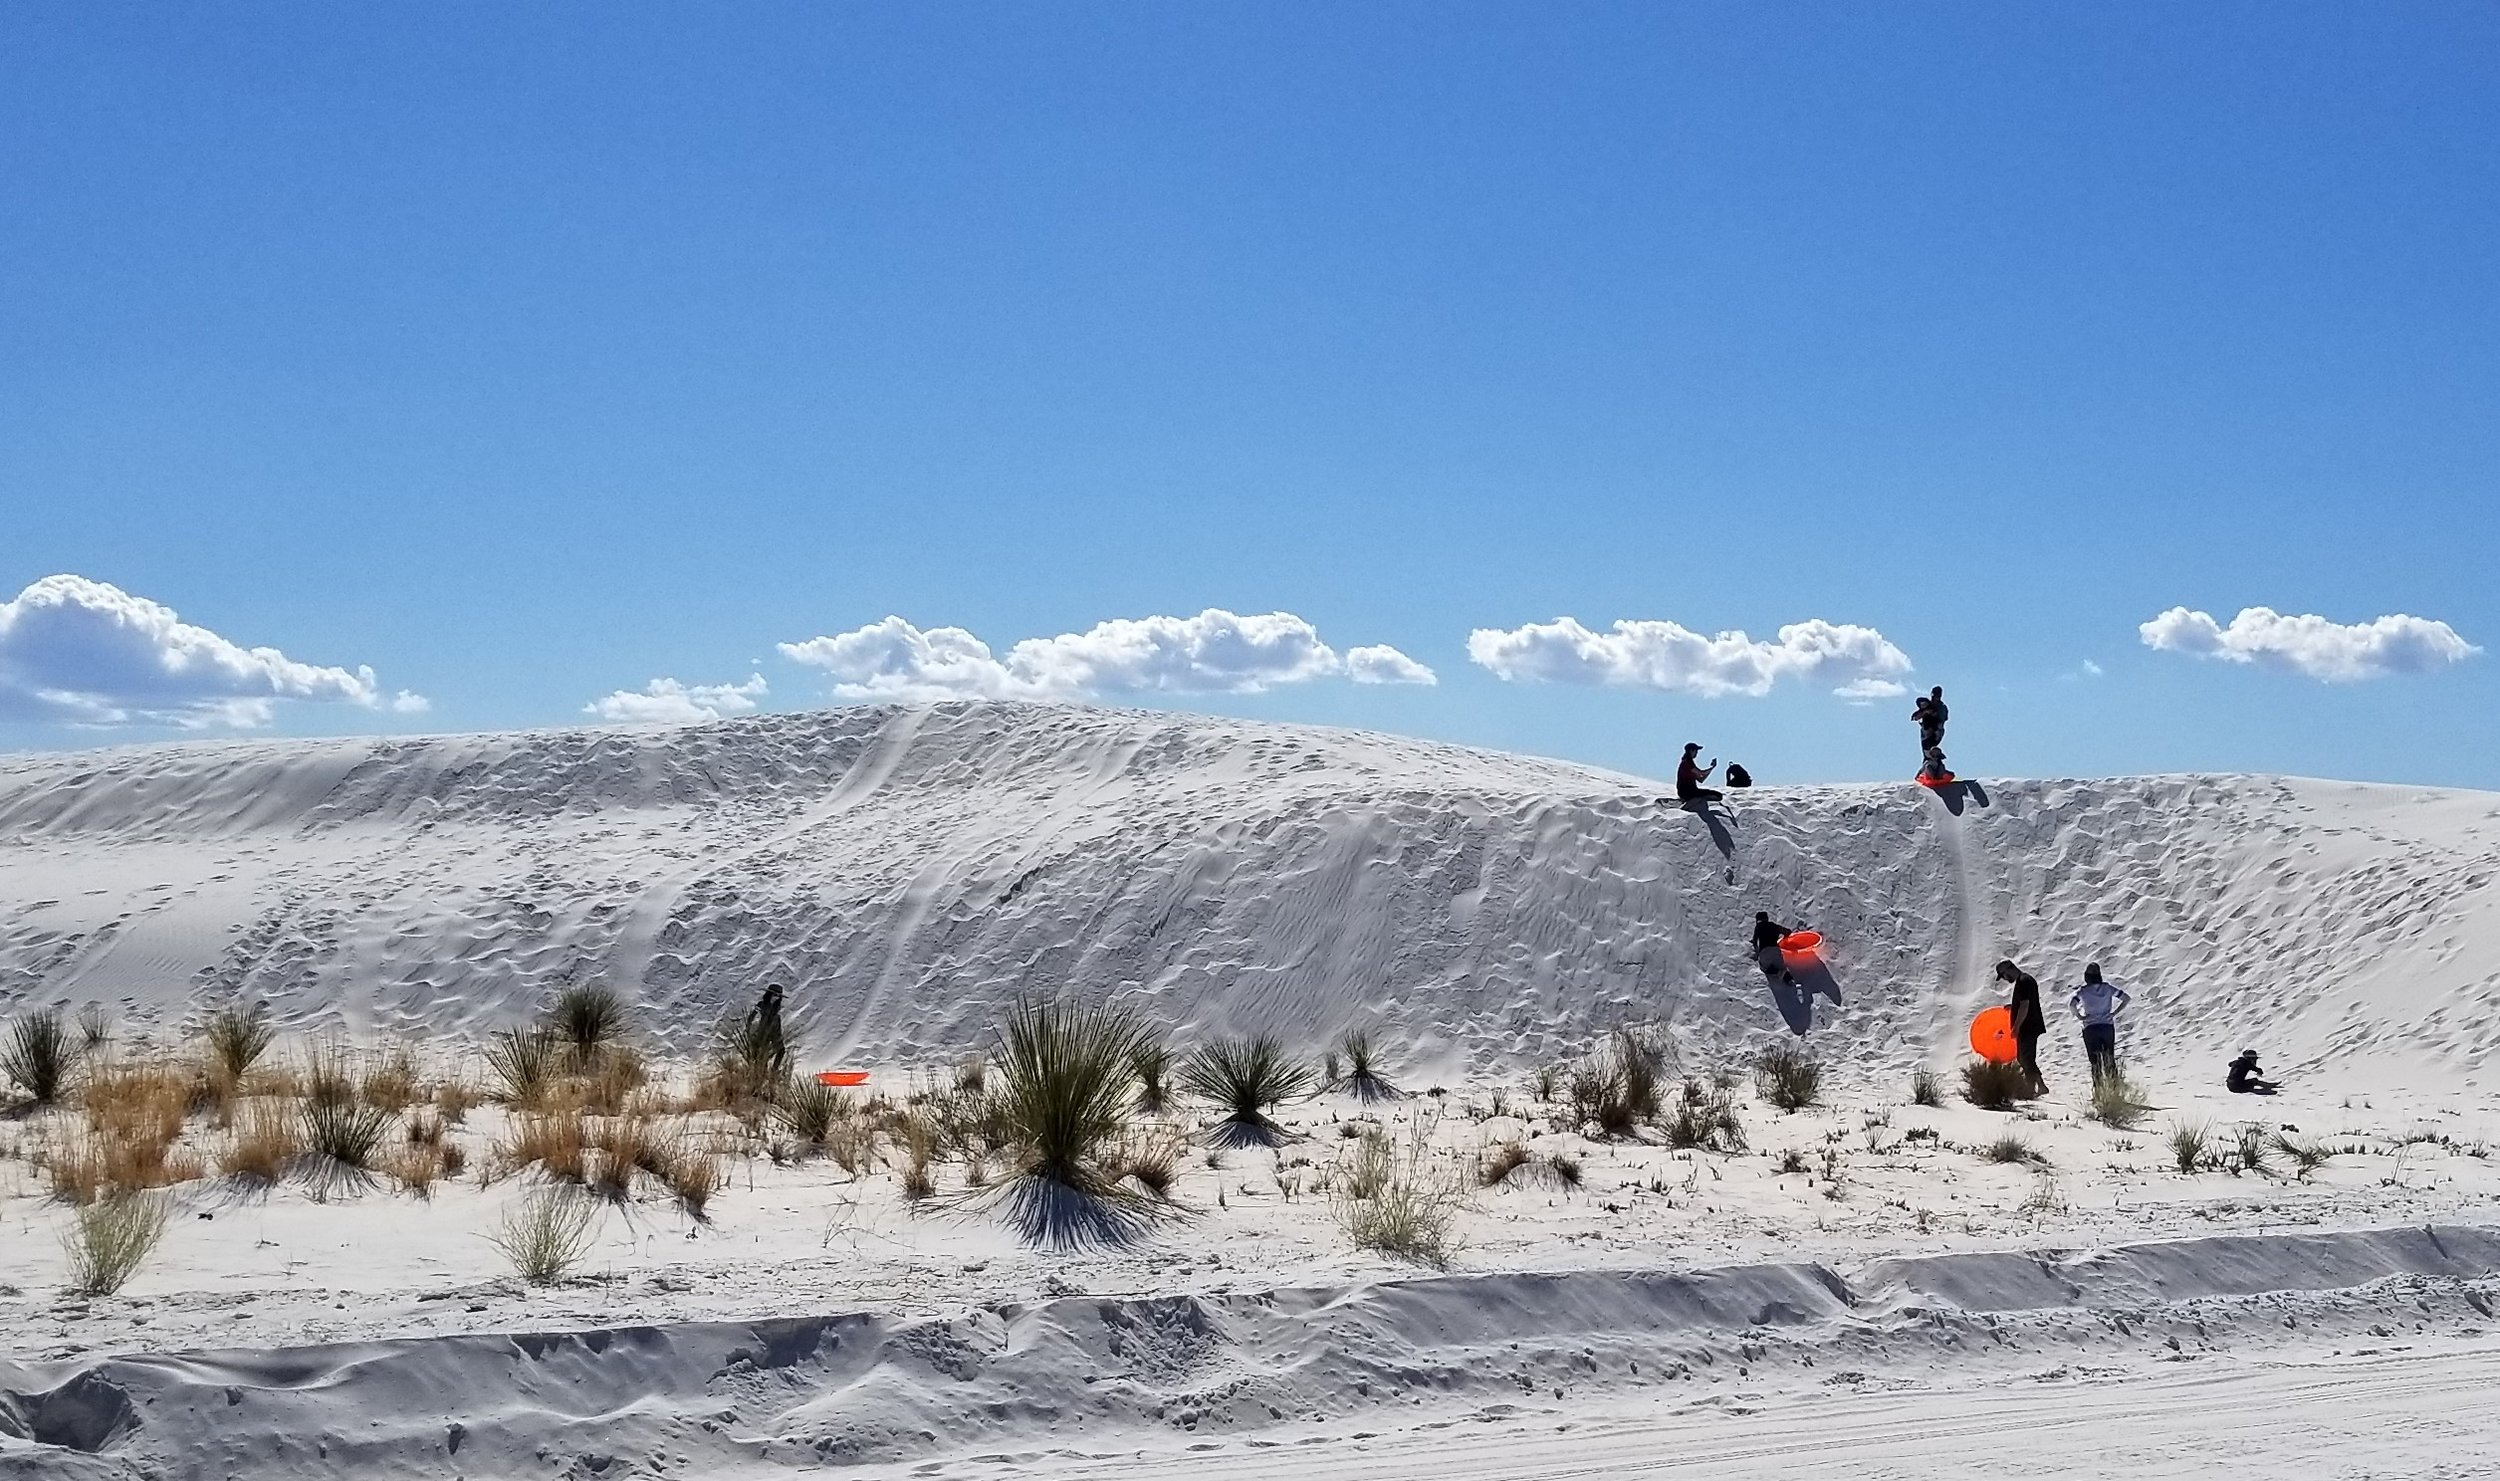 These dunes are firmer and cooler so people sled down them